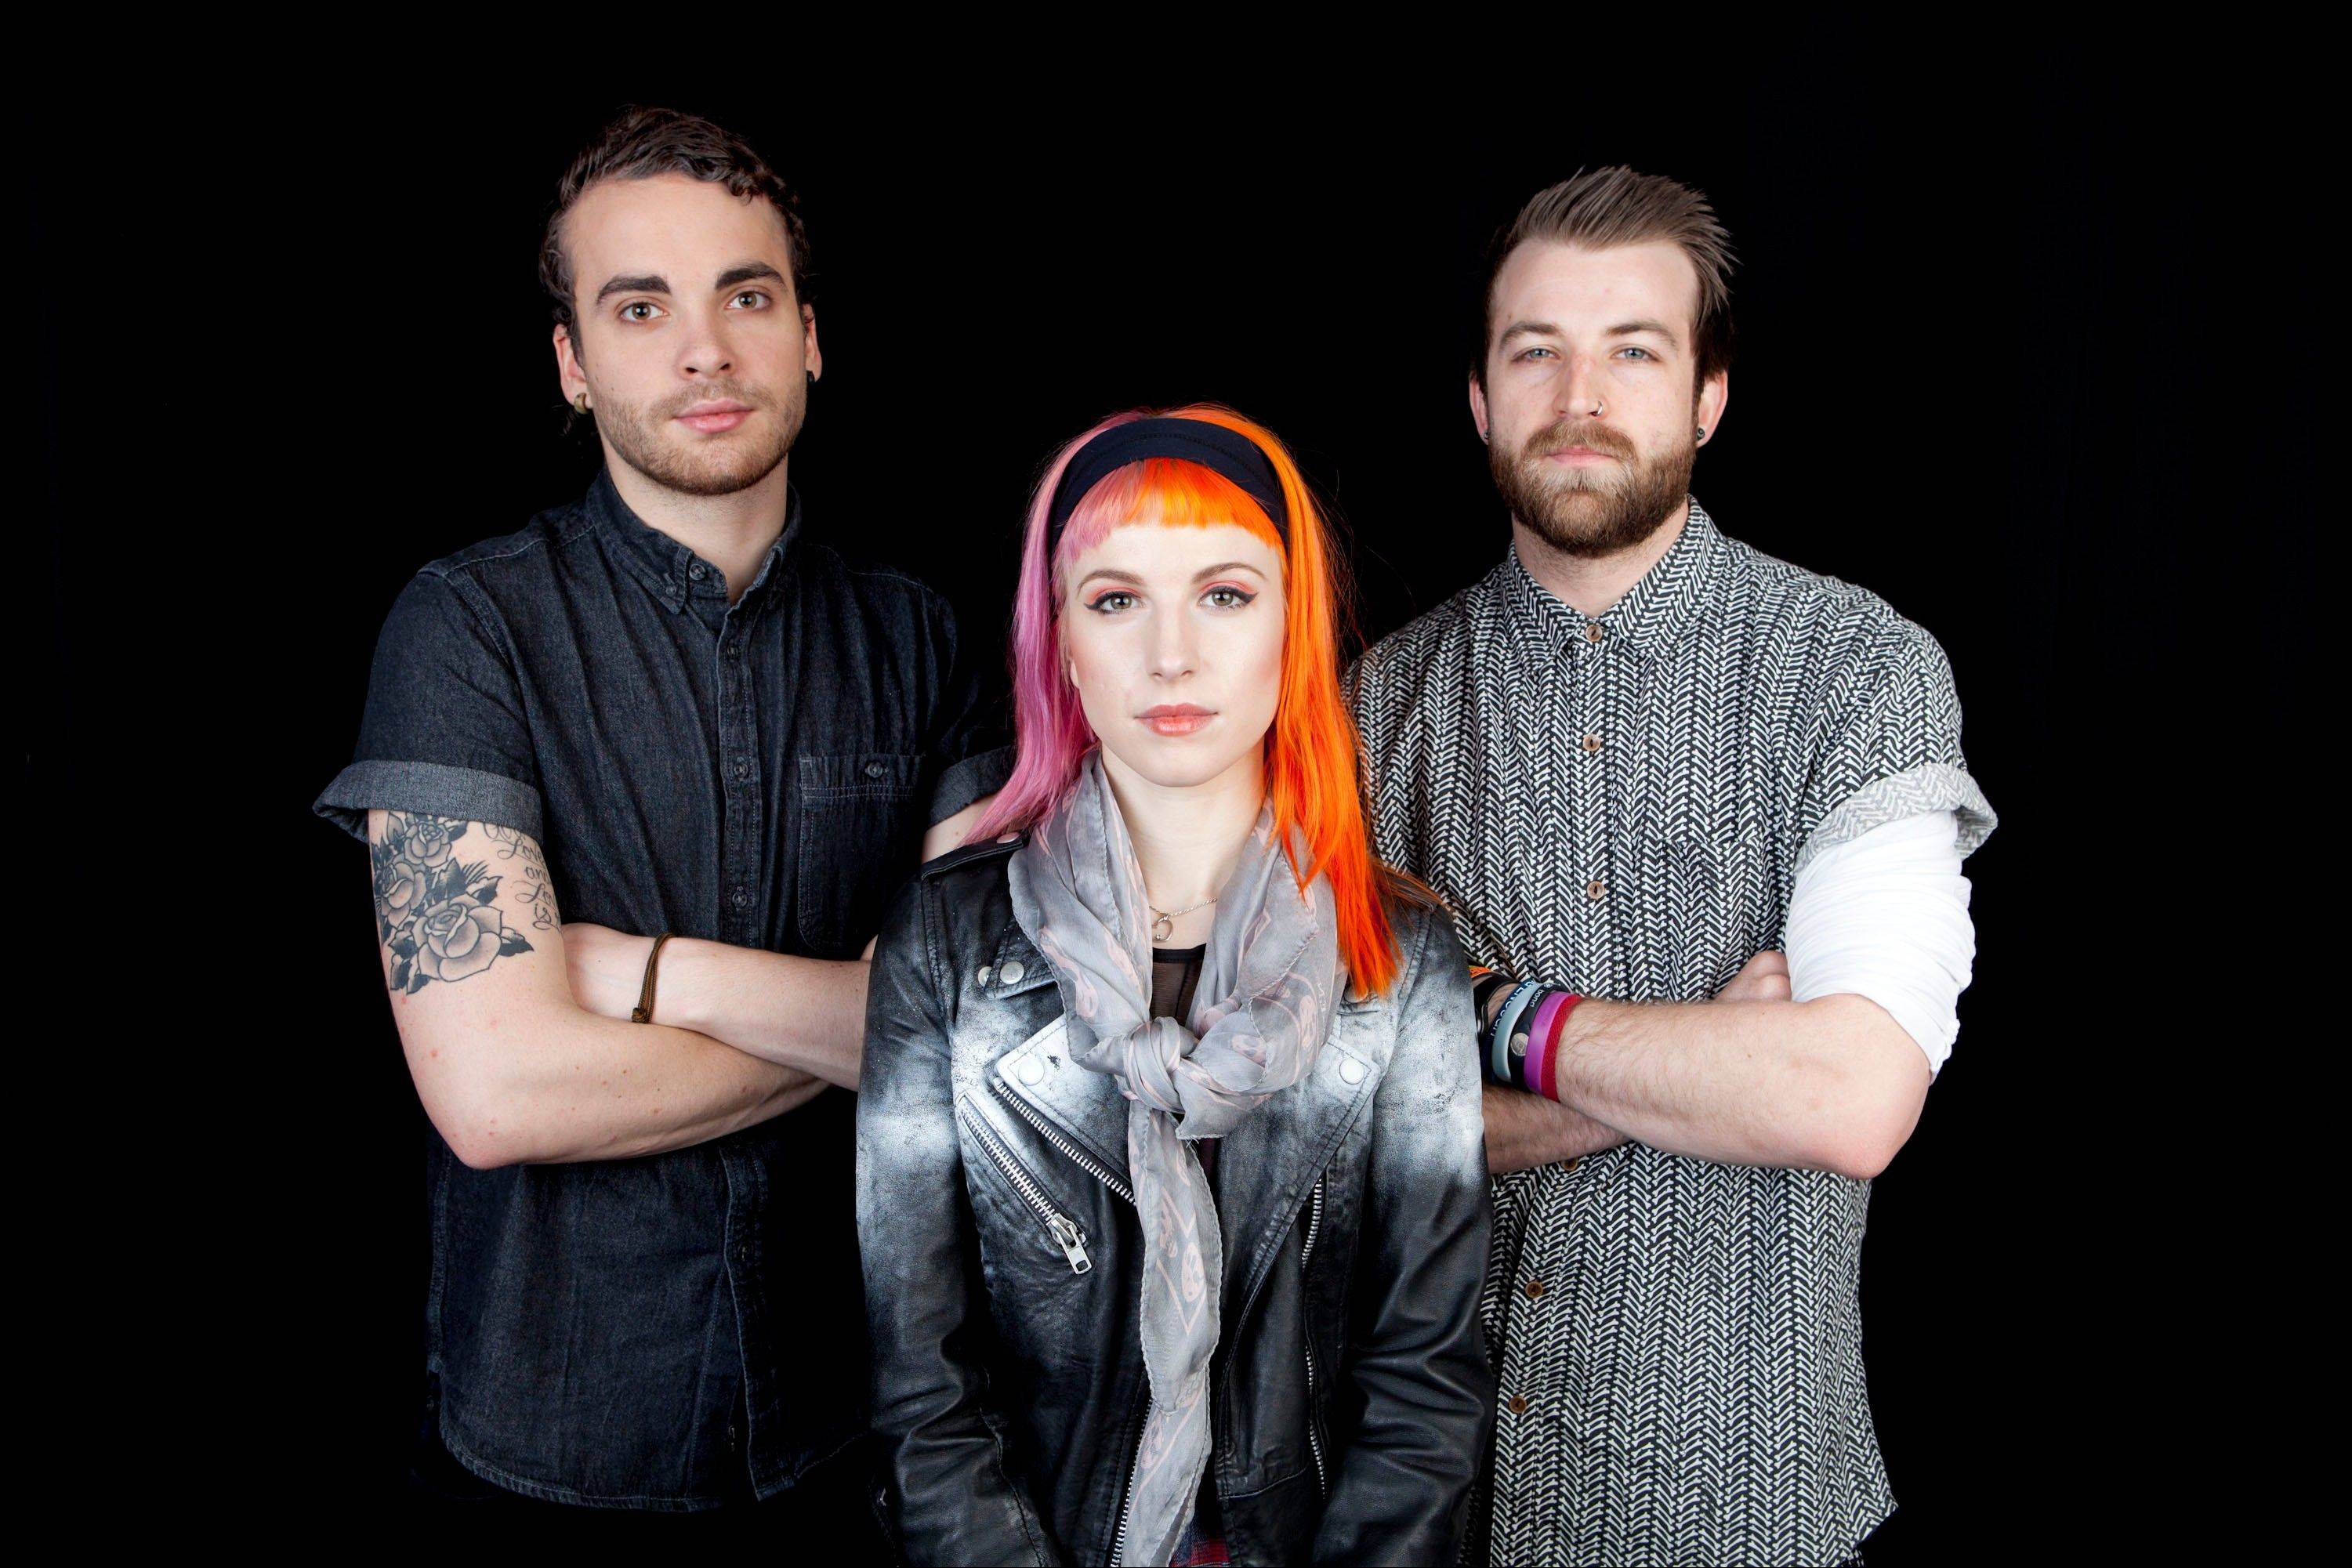 Paramore -- featuring Taylor York, Hayley Williams and Jeremy Davis -- is out with a fourth album. They play a sold-out show May 9 at the Chicago Theatre.